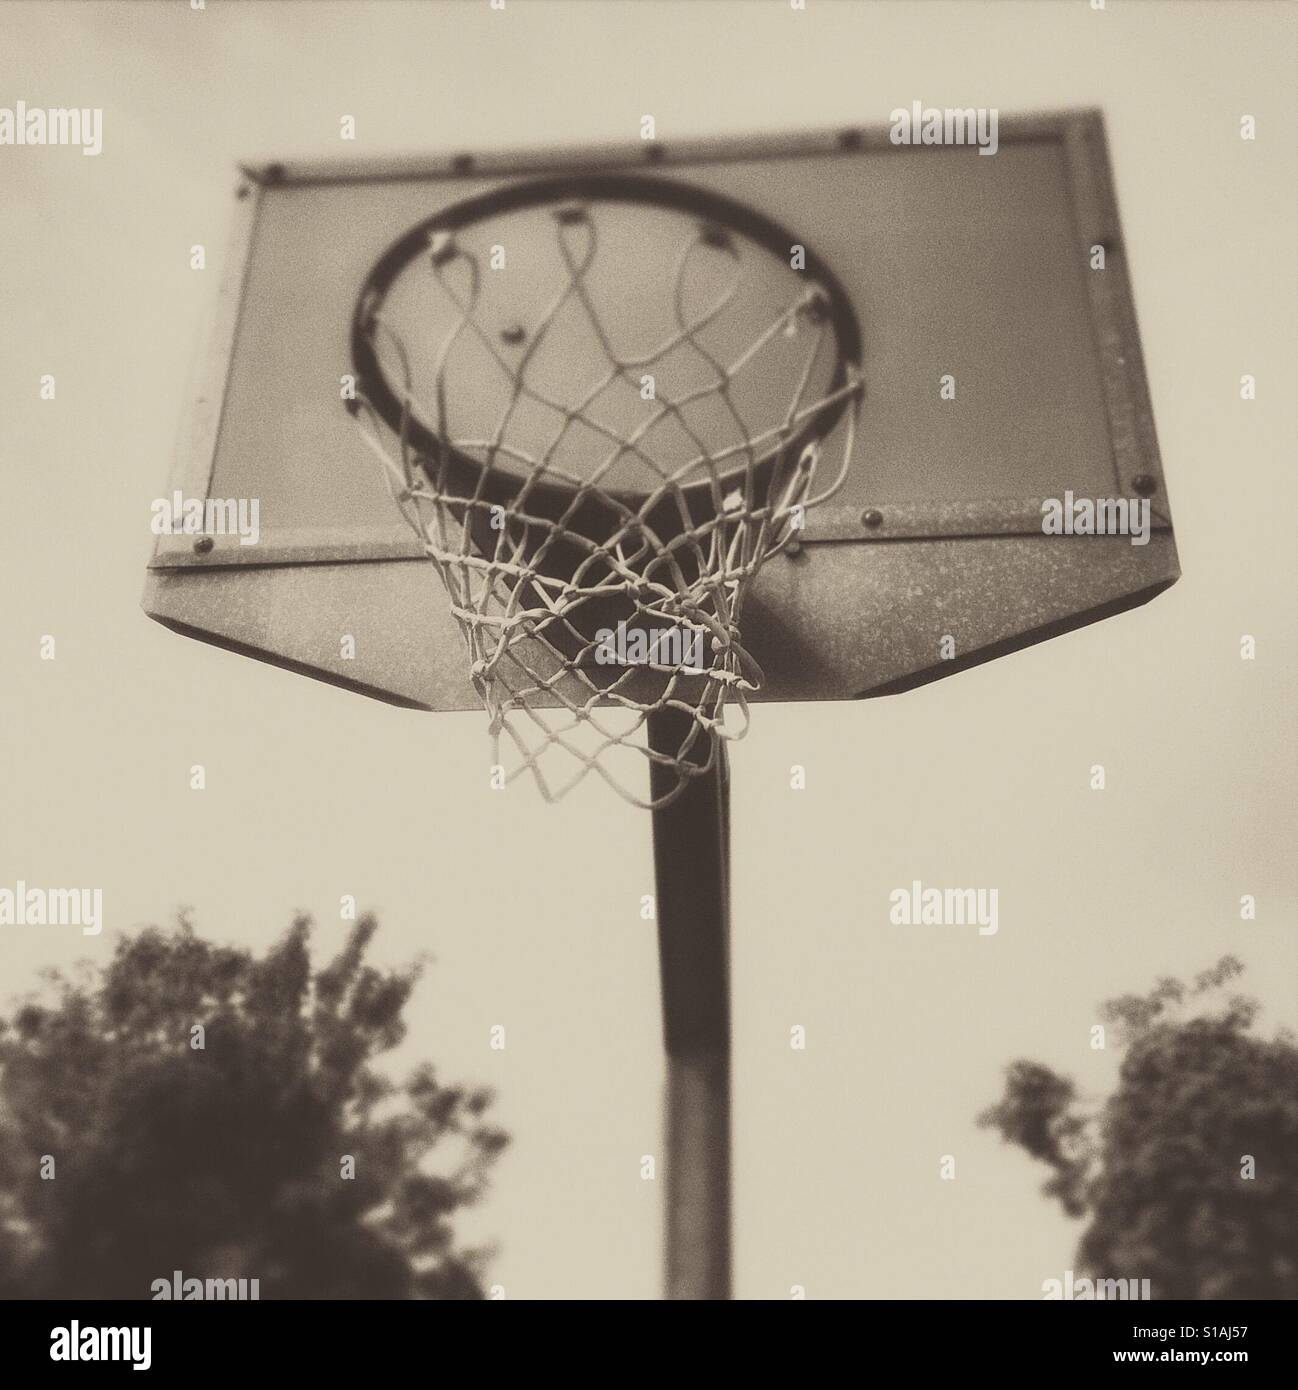 A basketball hoop in black and white - Stock Image